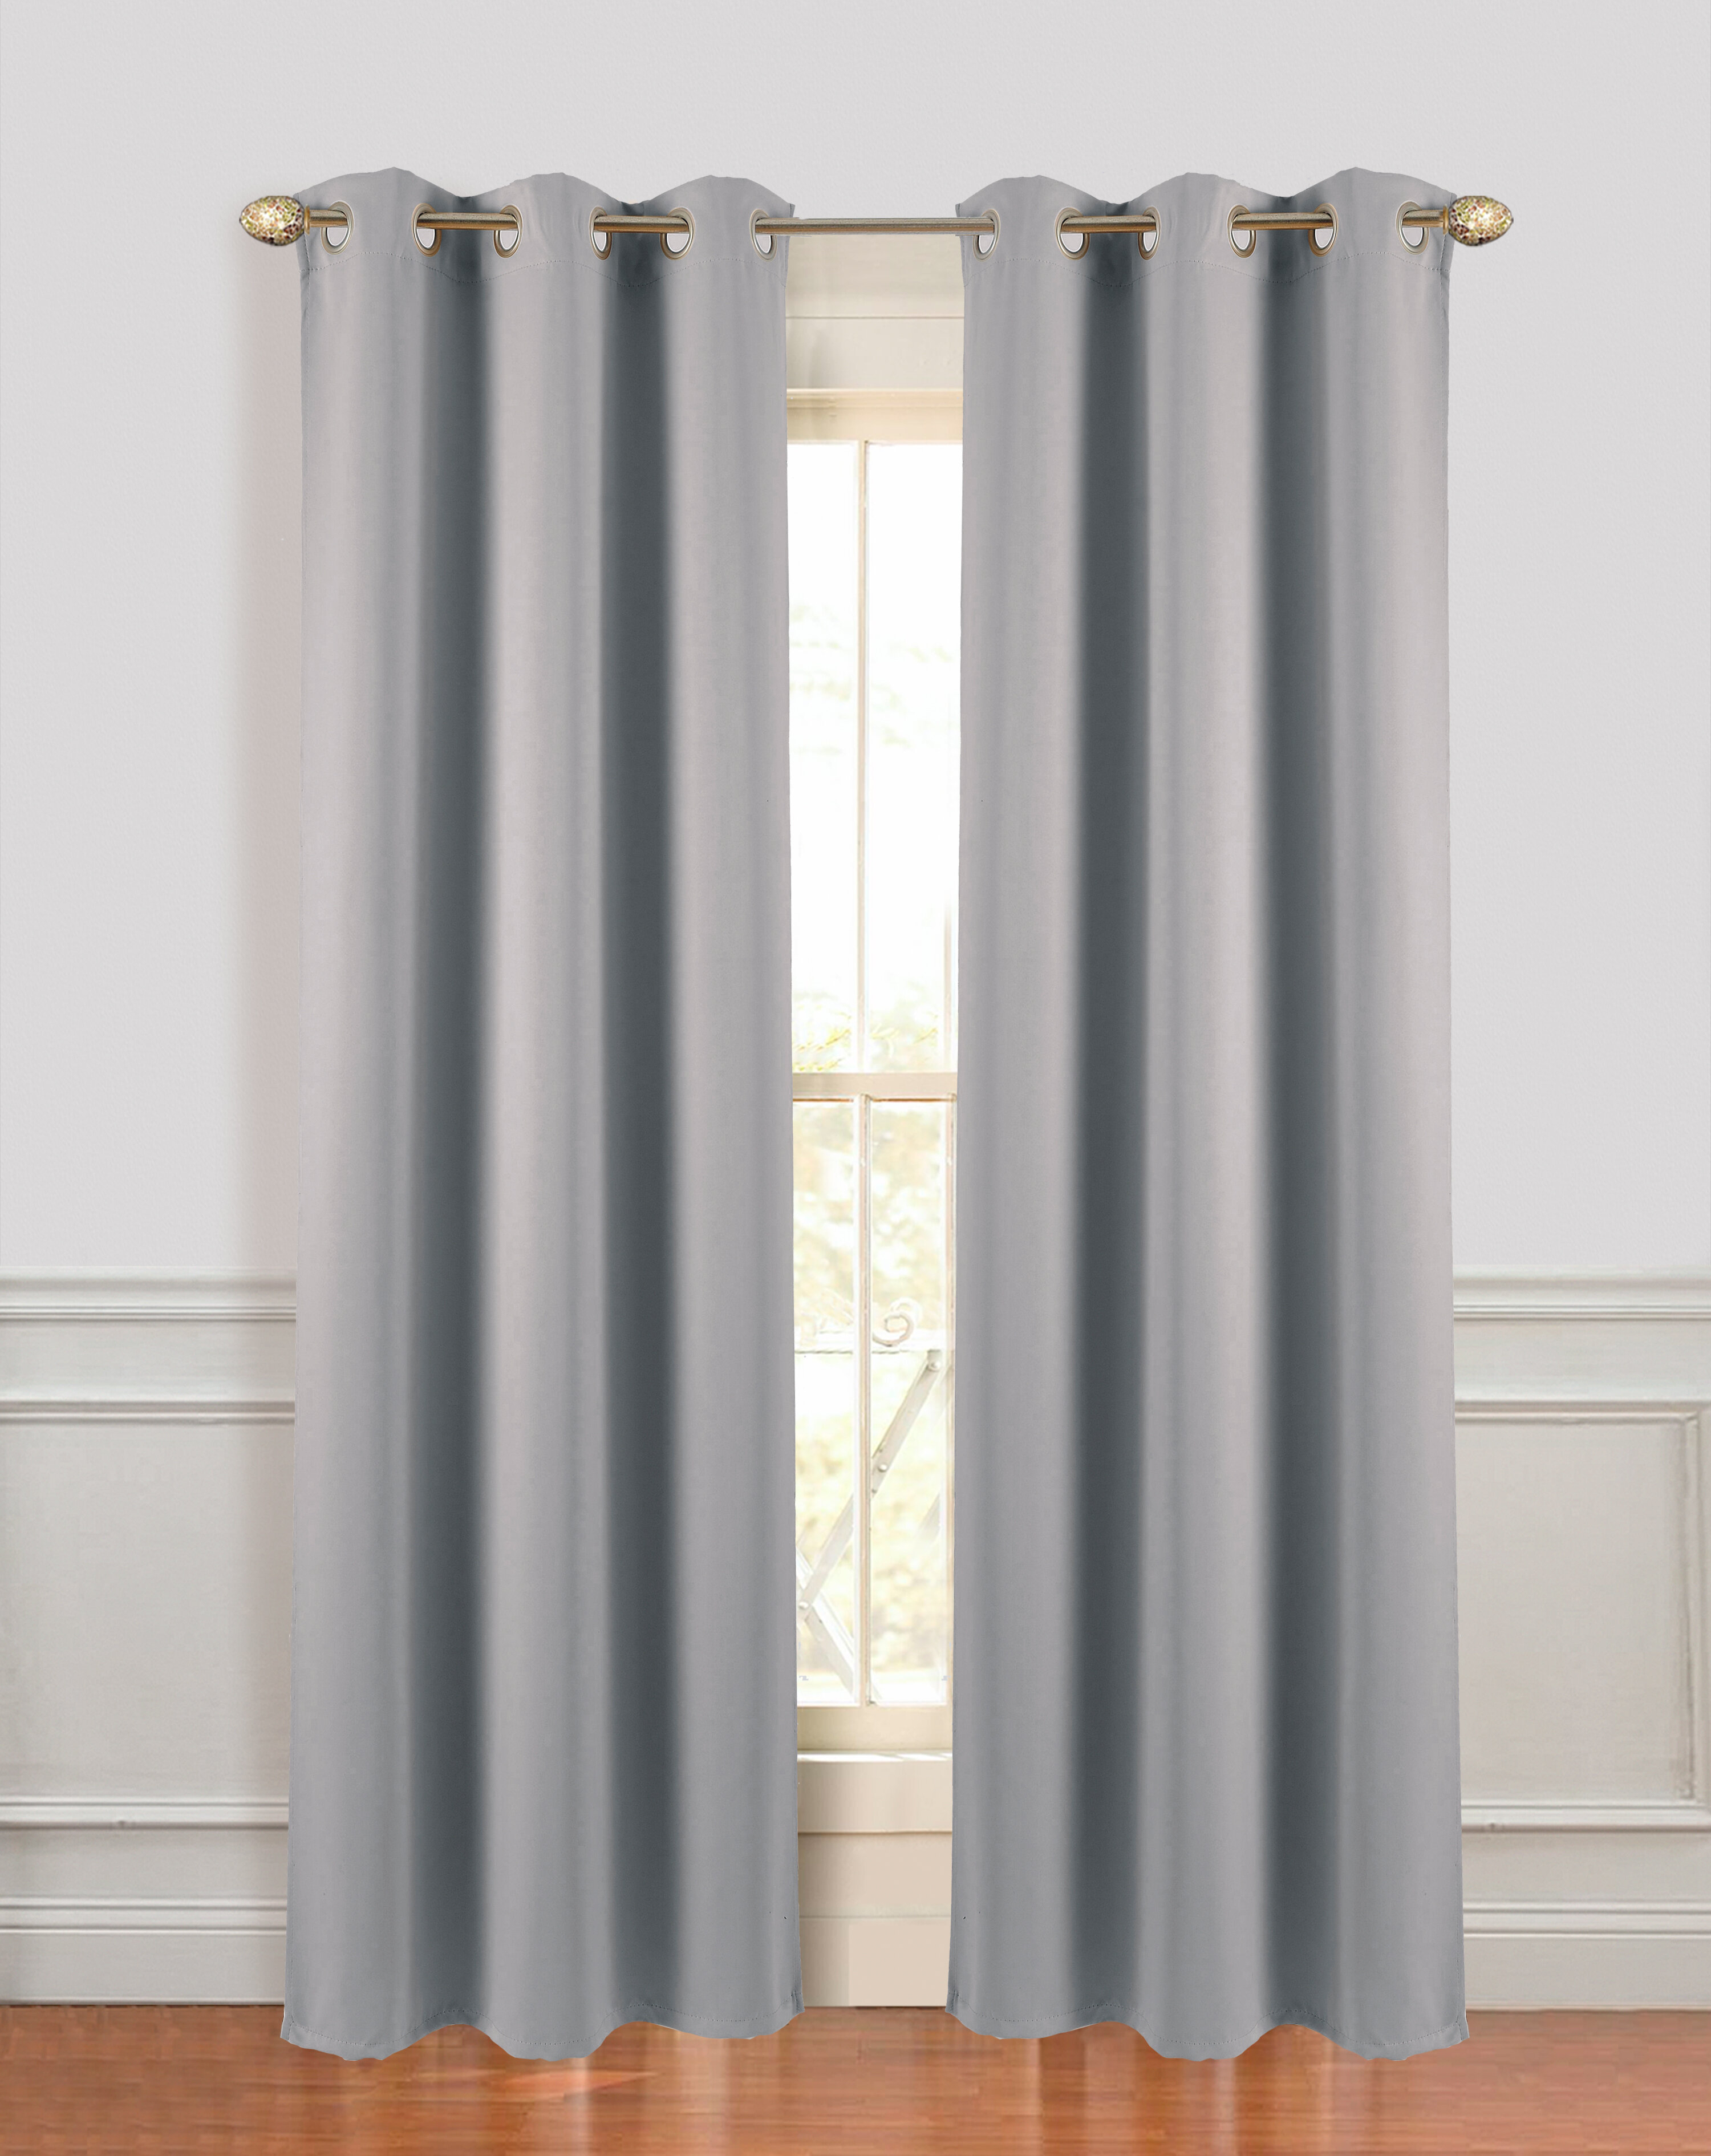 Grand Hotel Extra Wide Solid Blackout Grommet Curtain Panels Throughout Blackout Grommet Curtain Panels (View 15 of 20)